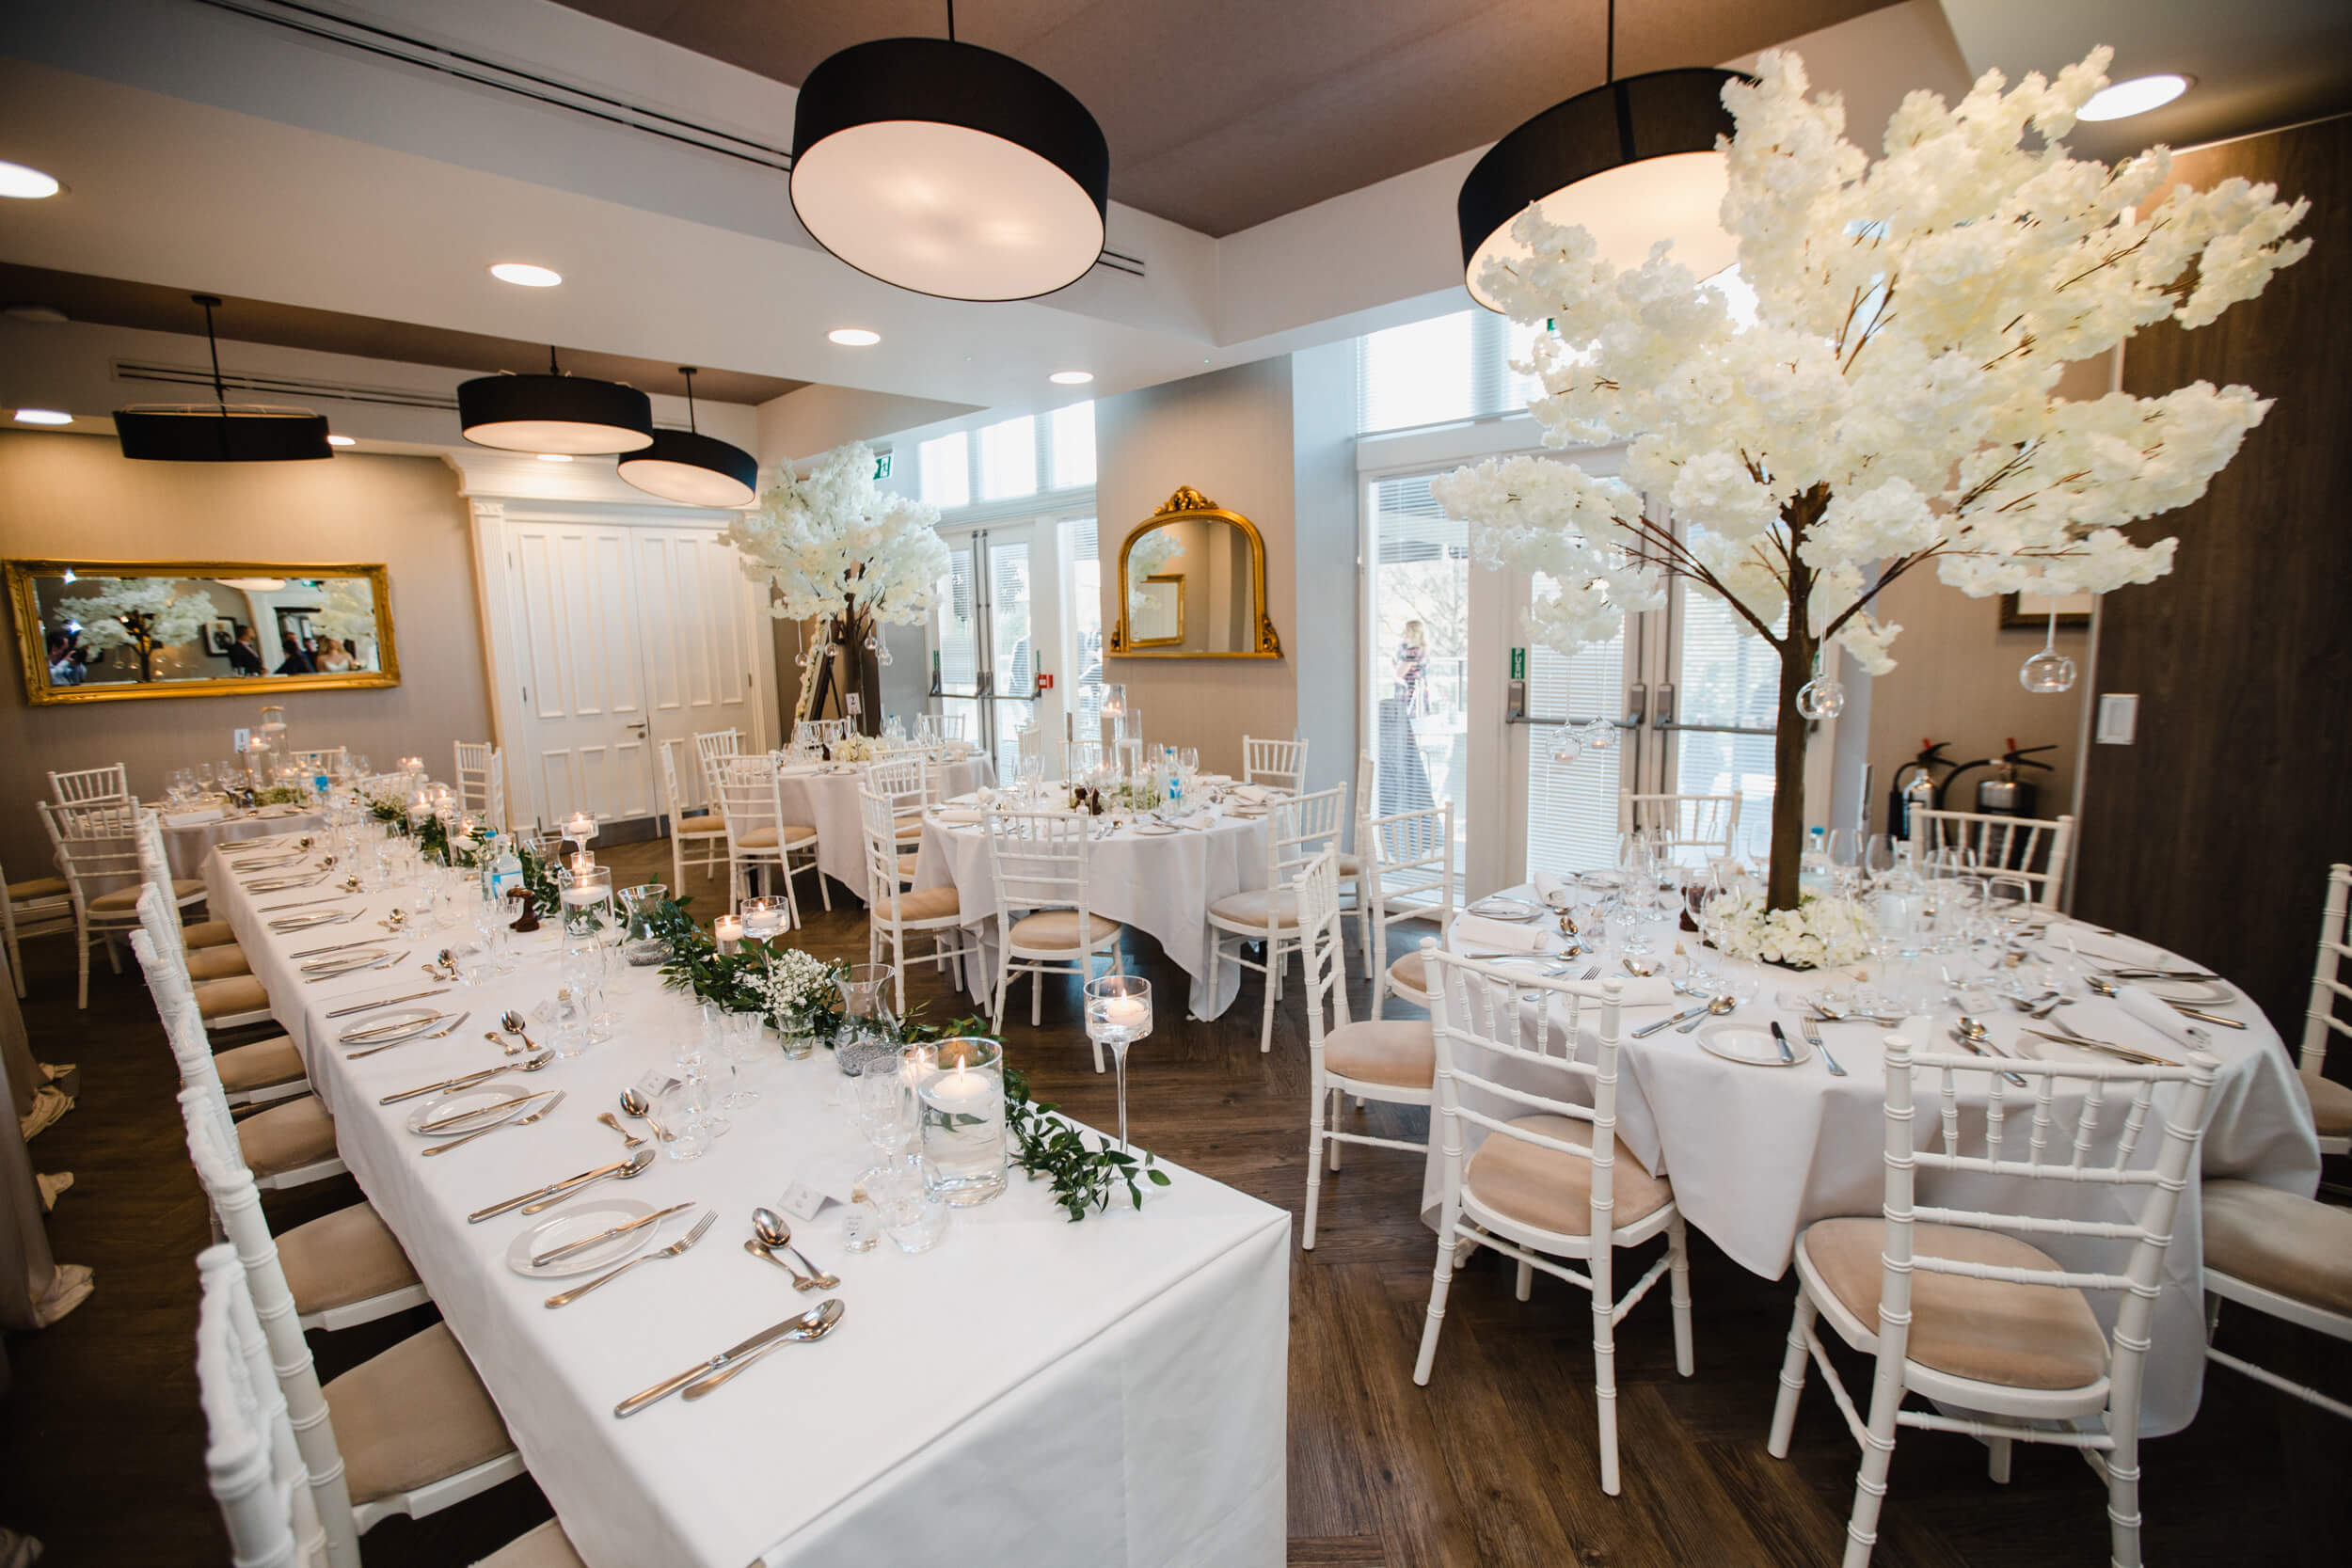 wide angle lens photograph of wedding breakfast room with blossom tree tables